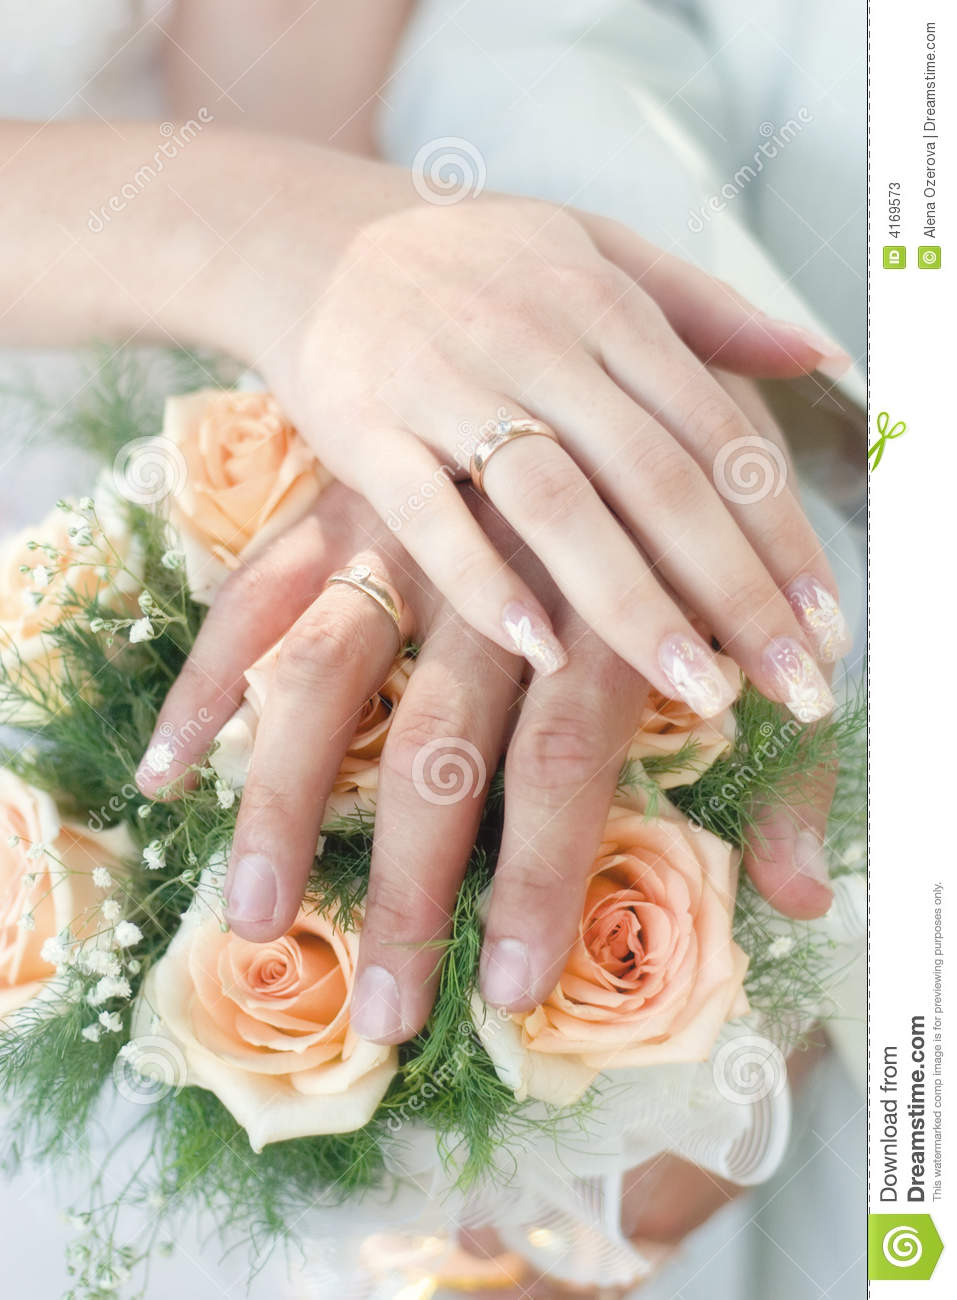 Hands With Wedding Rings Stock Image Image Of Blossom 4169573